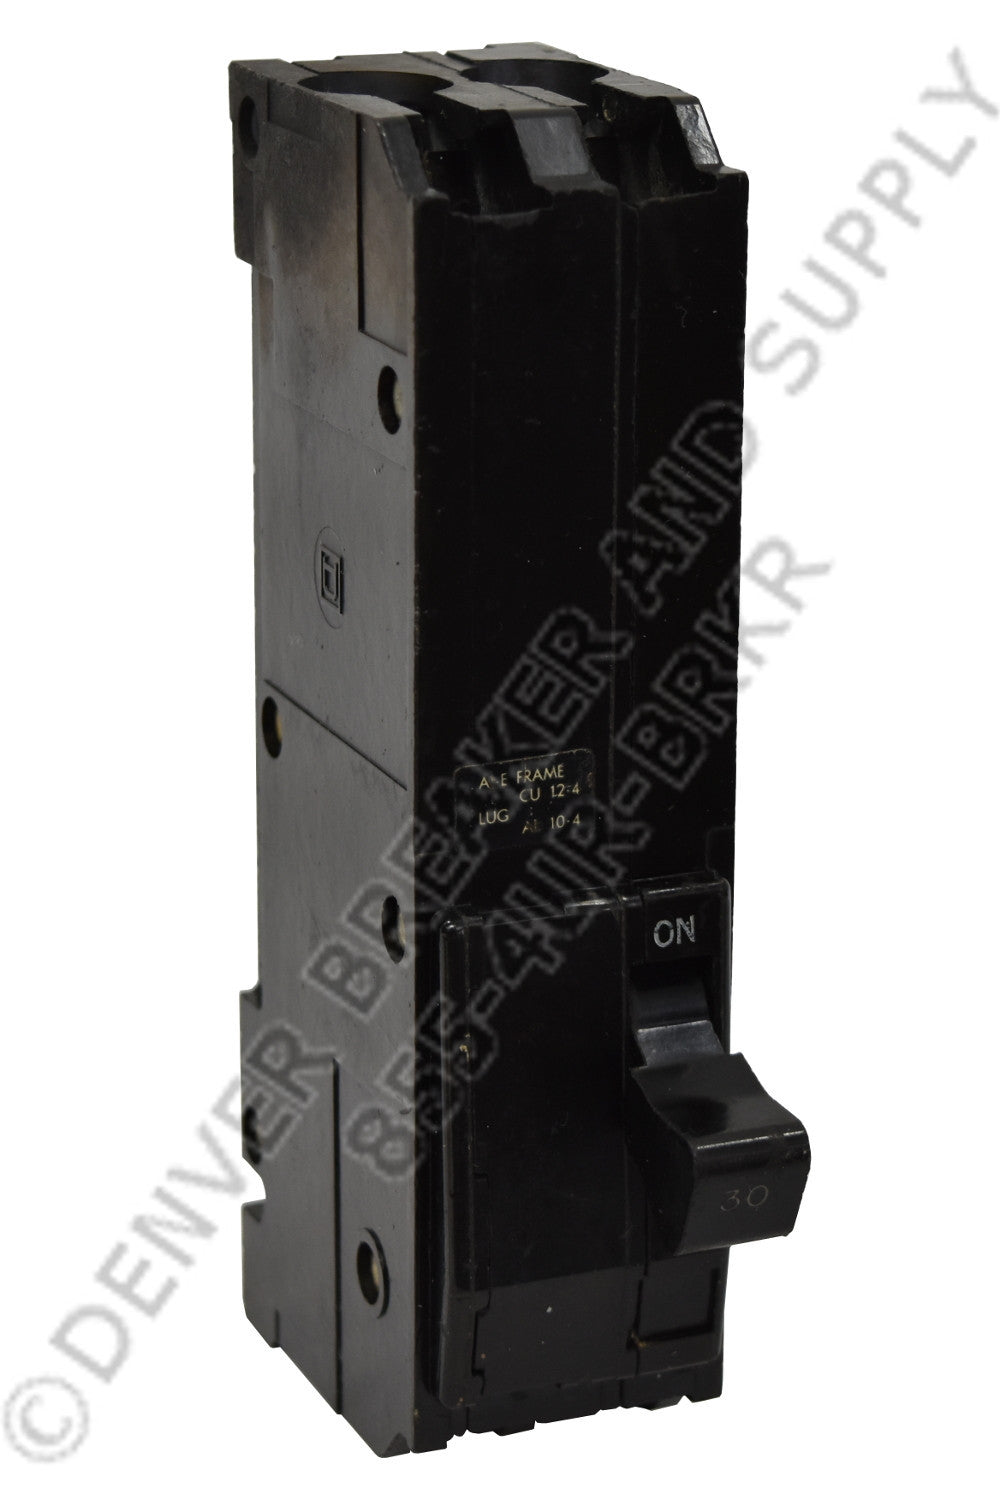 Square D A1B220 Circuit Breakers